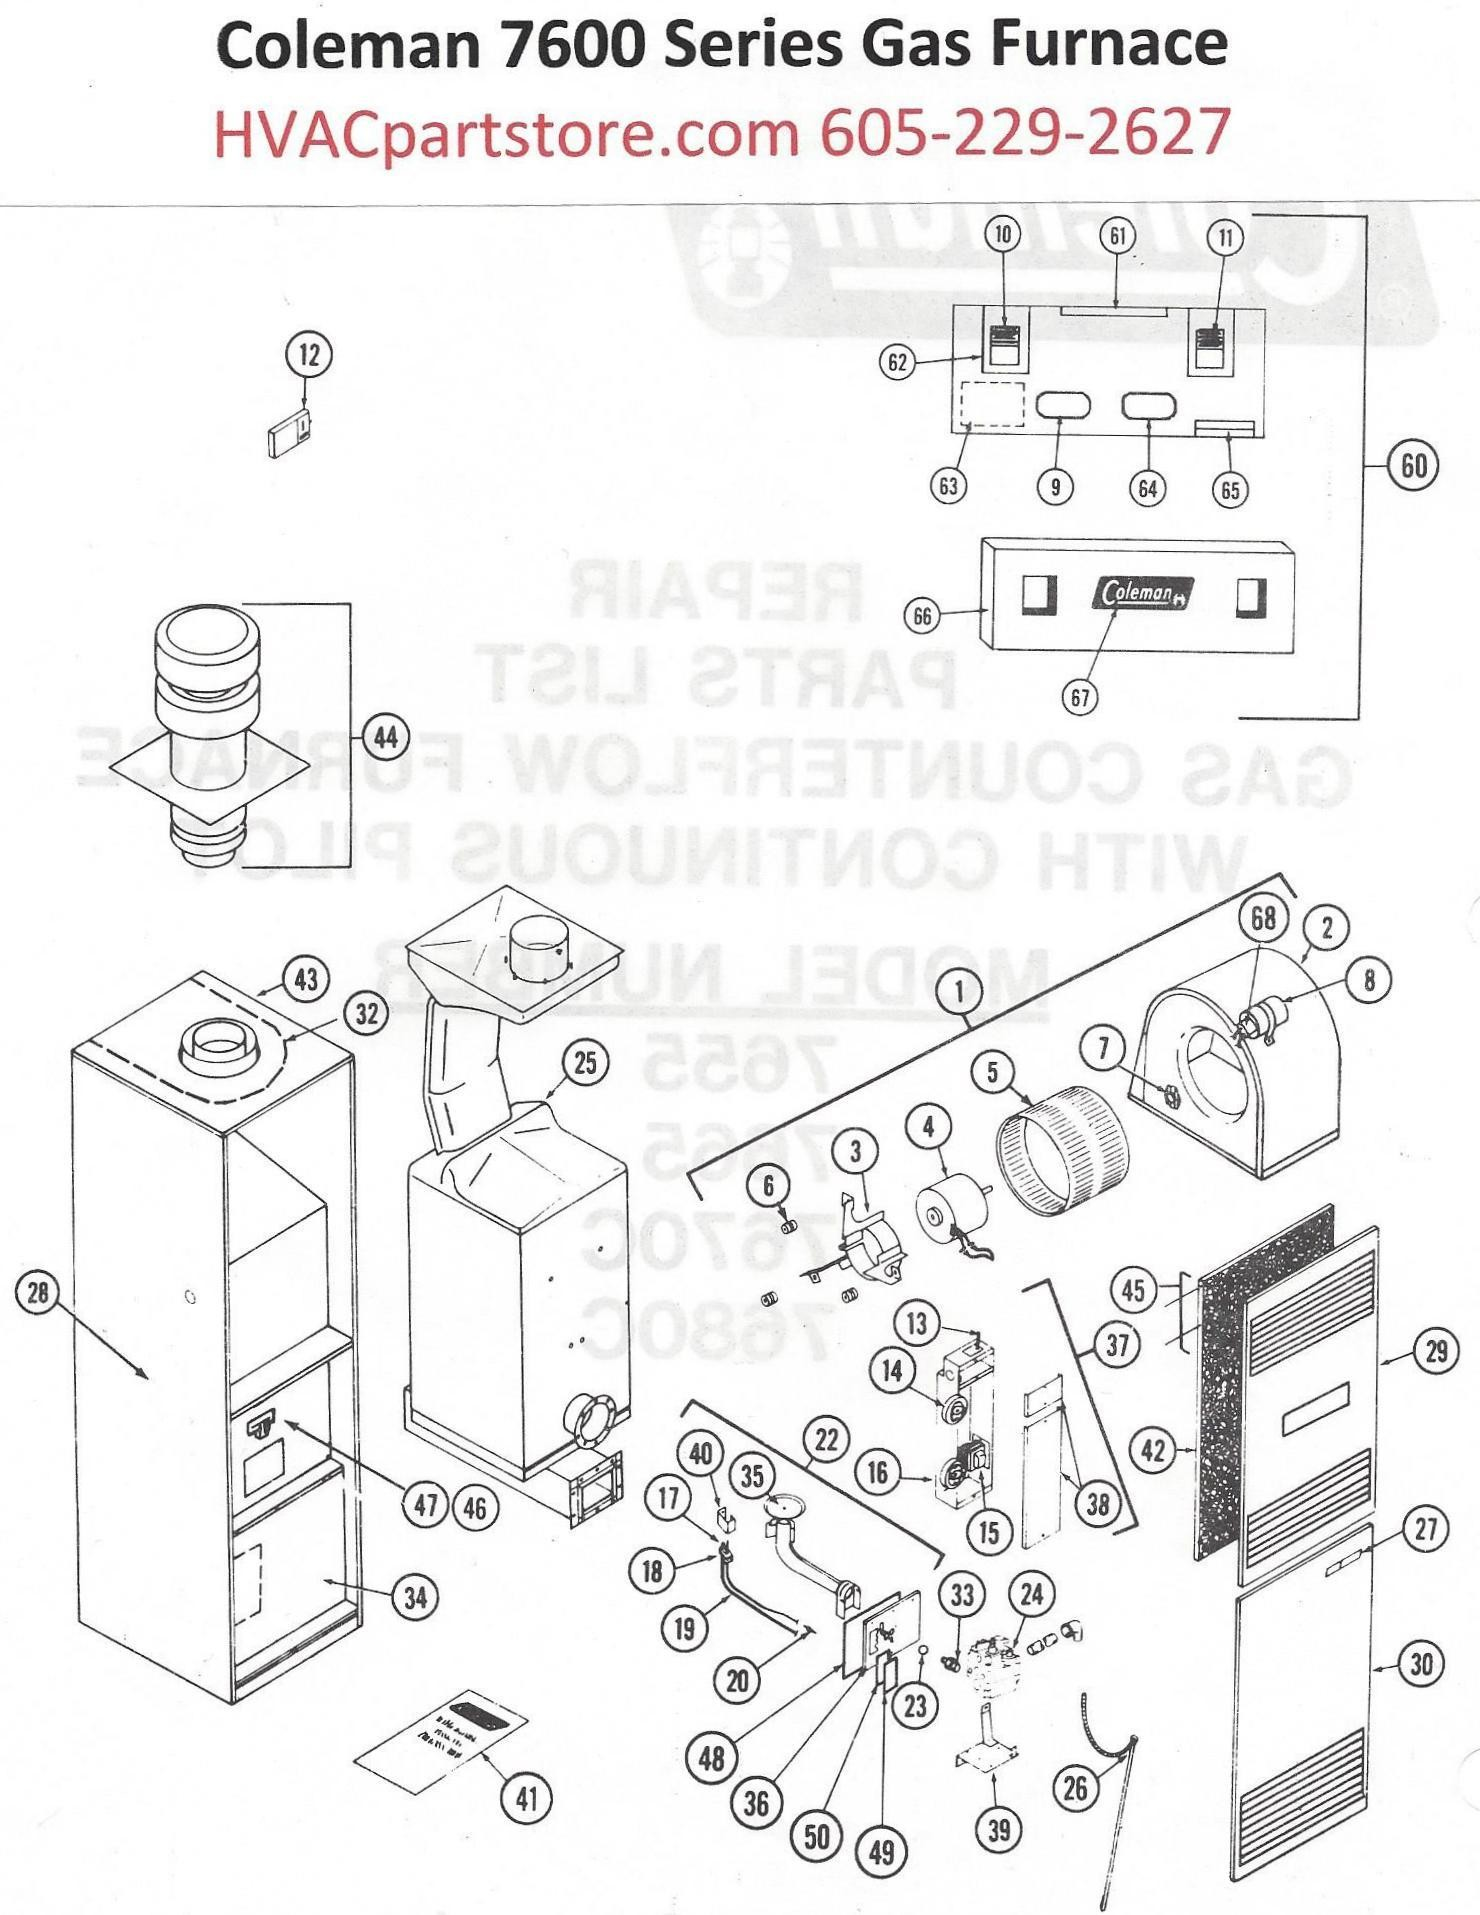 Coleman Stove Parts Diagram 7655 856 Coleman Gas Furnace Parts – Hvacpartstore Of Coleman Stove Parts Diagram